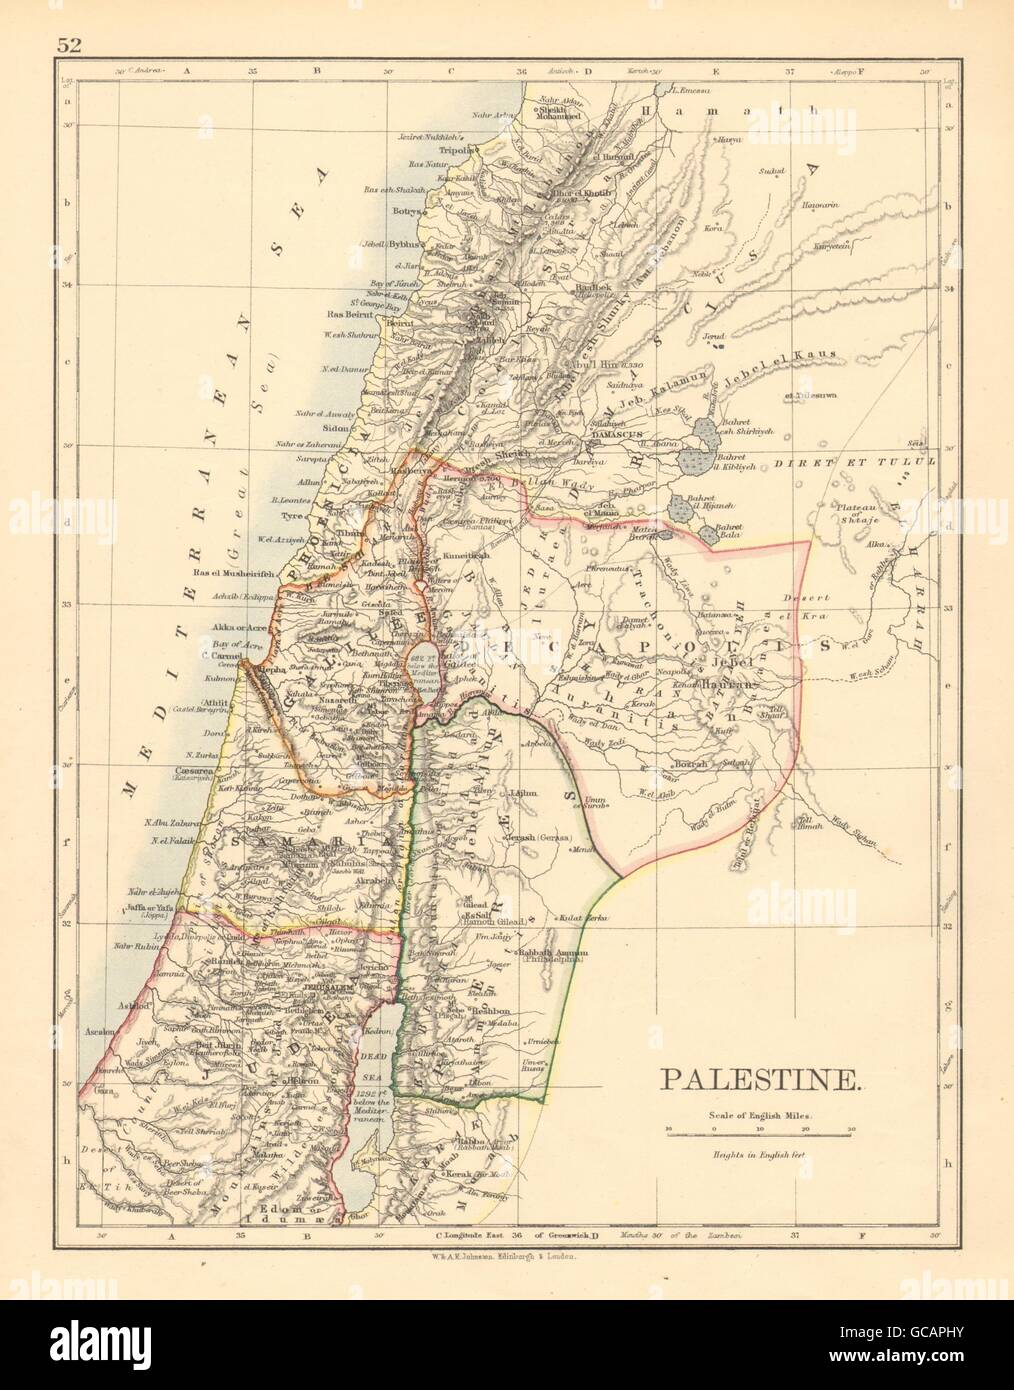 PALESTINE. Galilee Samaria Judea Perea Phoenicia Decapolis. JOHNSTON on aelia capitolina map, israeli settlement, middle east map, mount carmel map, sinai peninsula map, iudaea province map, philistia map, jezreel valley map, west bank map, the decapolis map, laodicean church map, mount gerizim, jerusalem map, jordan river map, tyre map, judea and samaria, sea of galilee, old testament holy land map, damascus map, kingdom of judah, tell beit mirsim map, the whole state map, dead sea map, antonia fortress map,